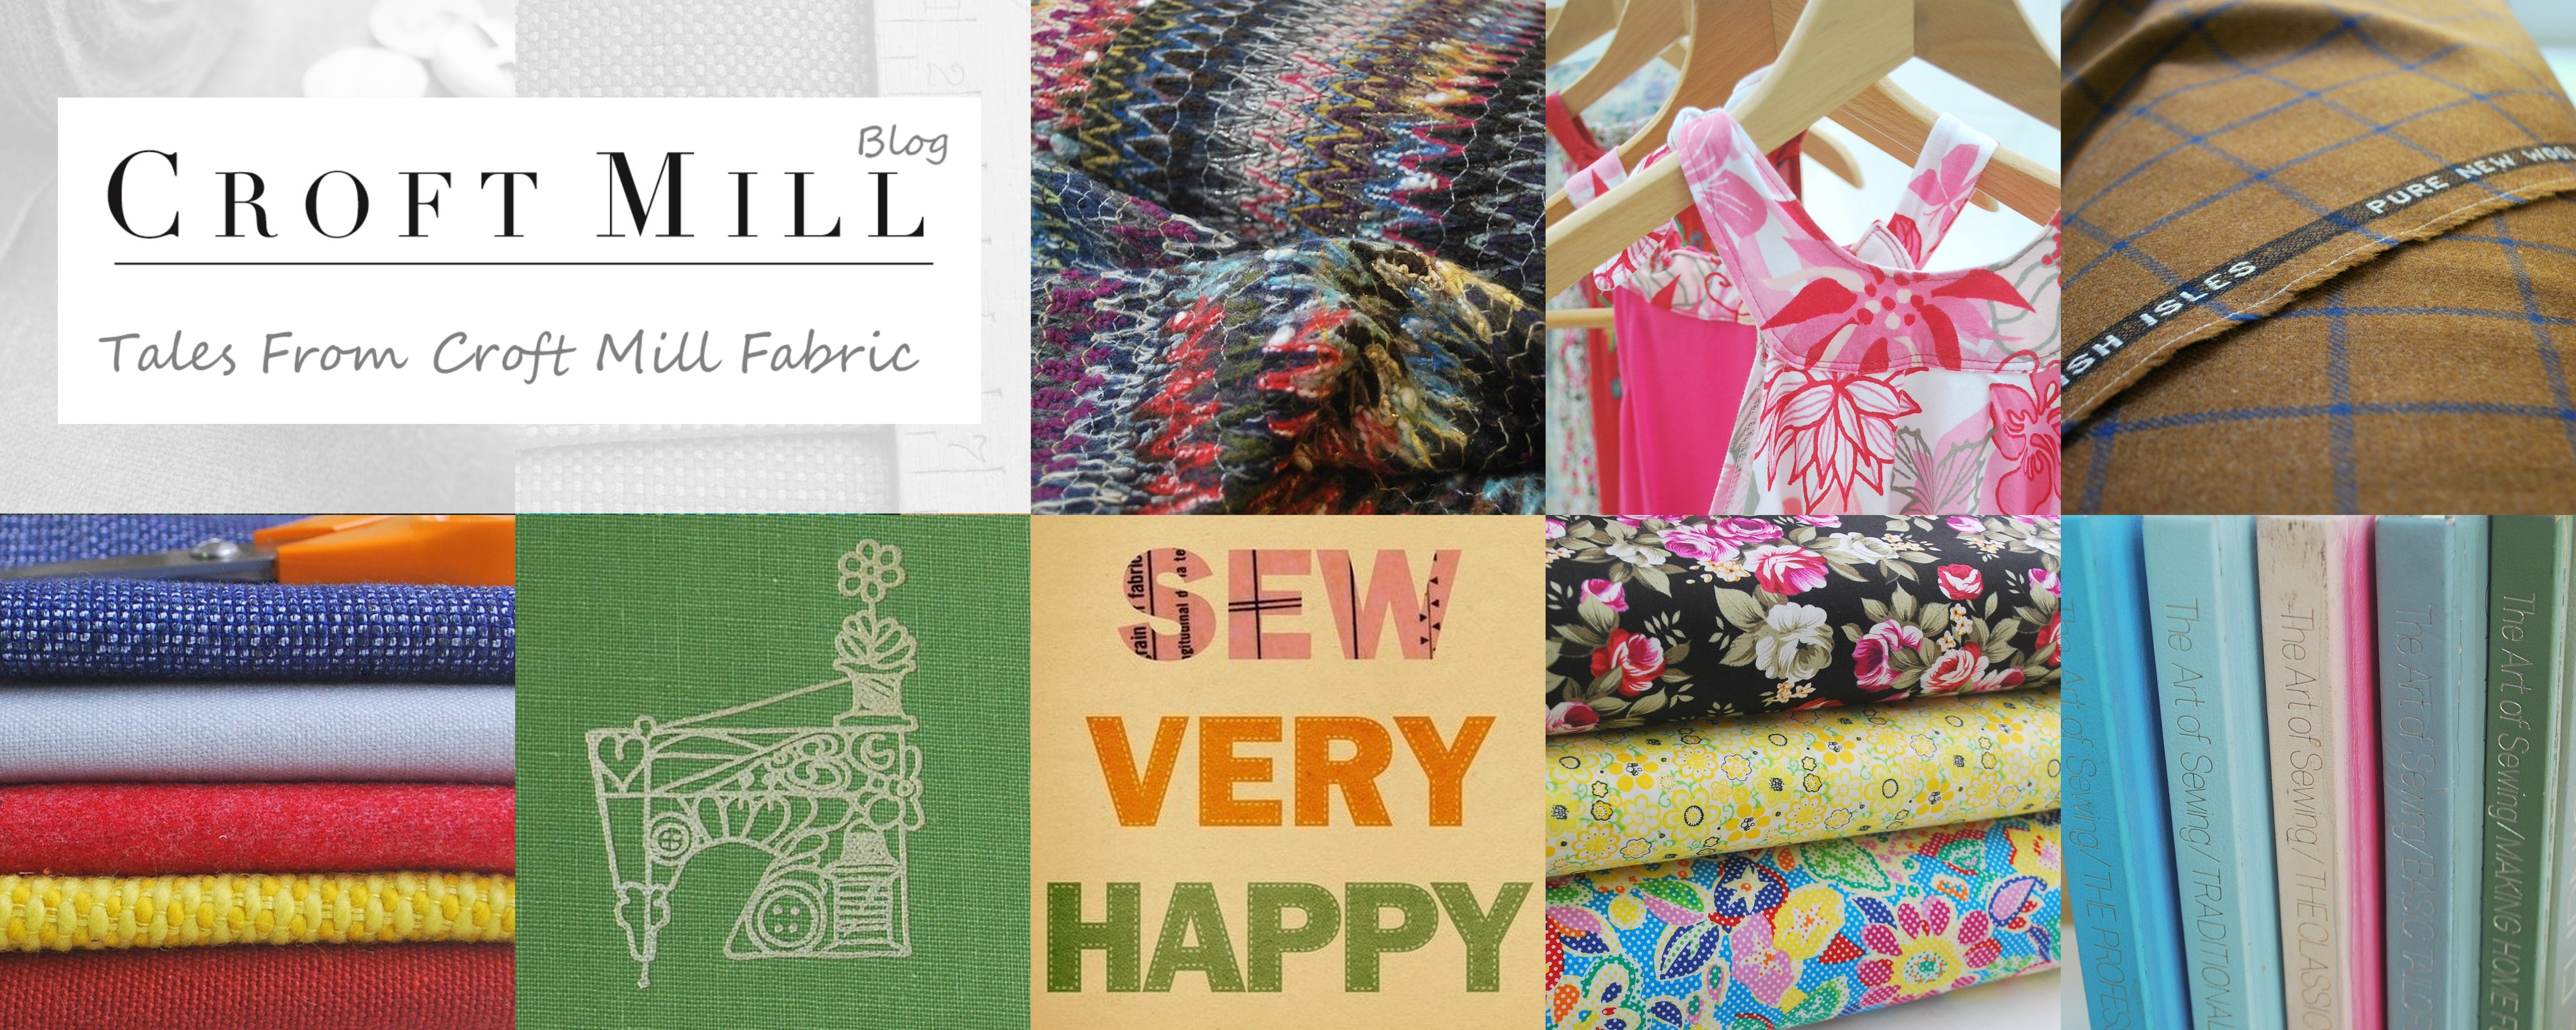 Get Craftii with the Croft Mill Fabrics Blog